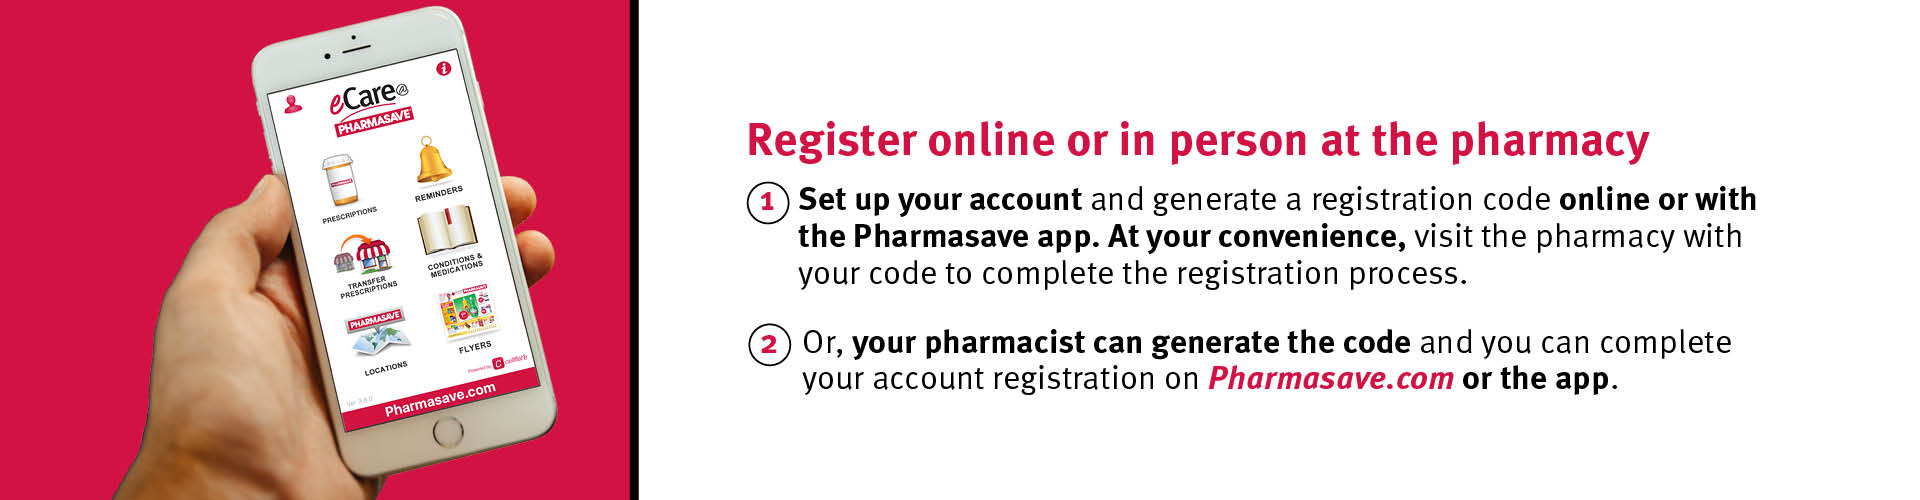 Register for an eCare Account